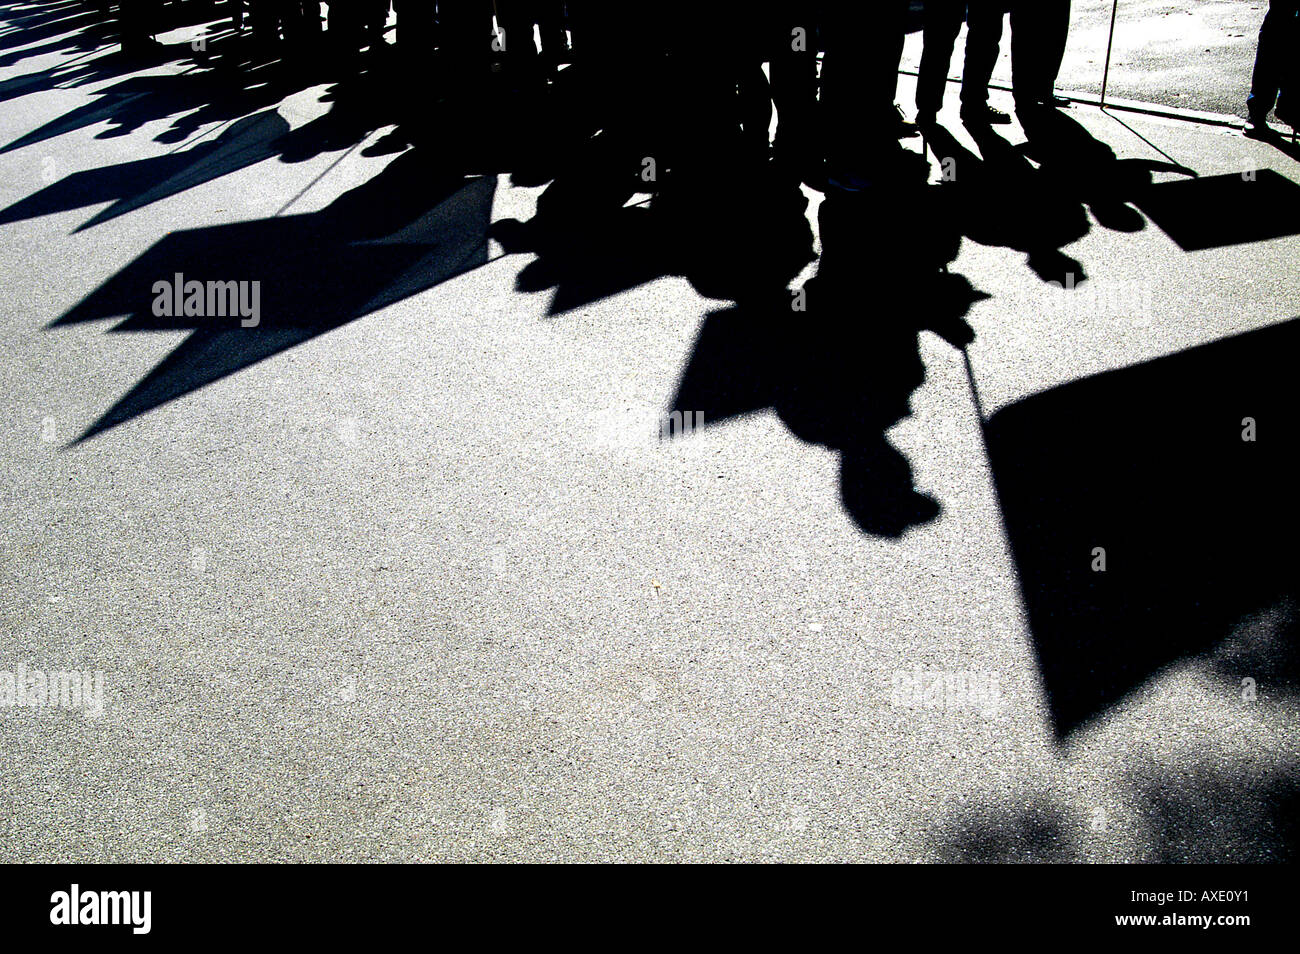 Shadow of demonstrators - Stock Image